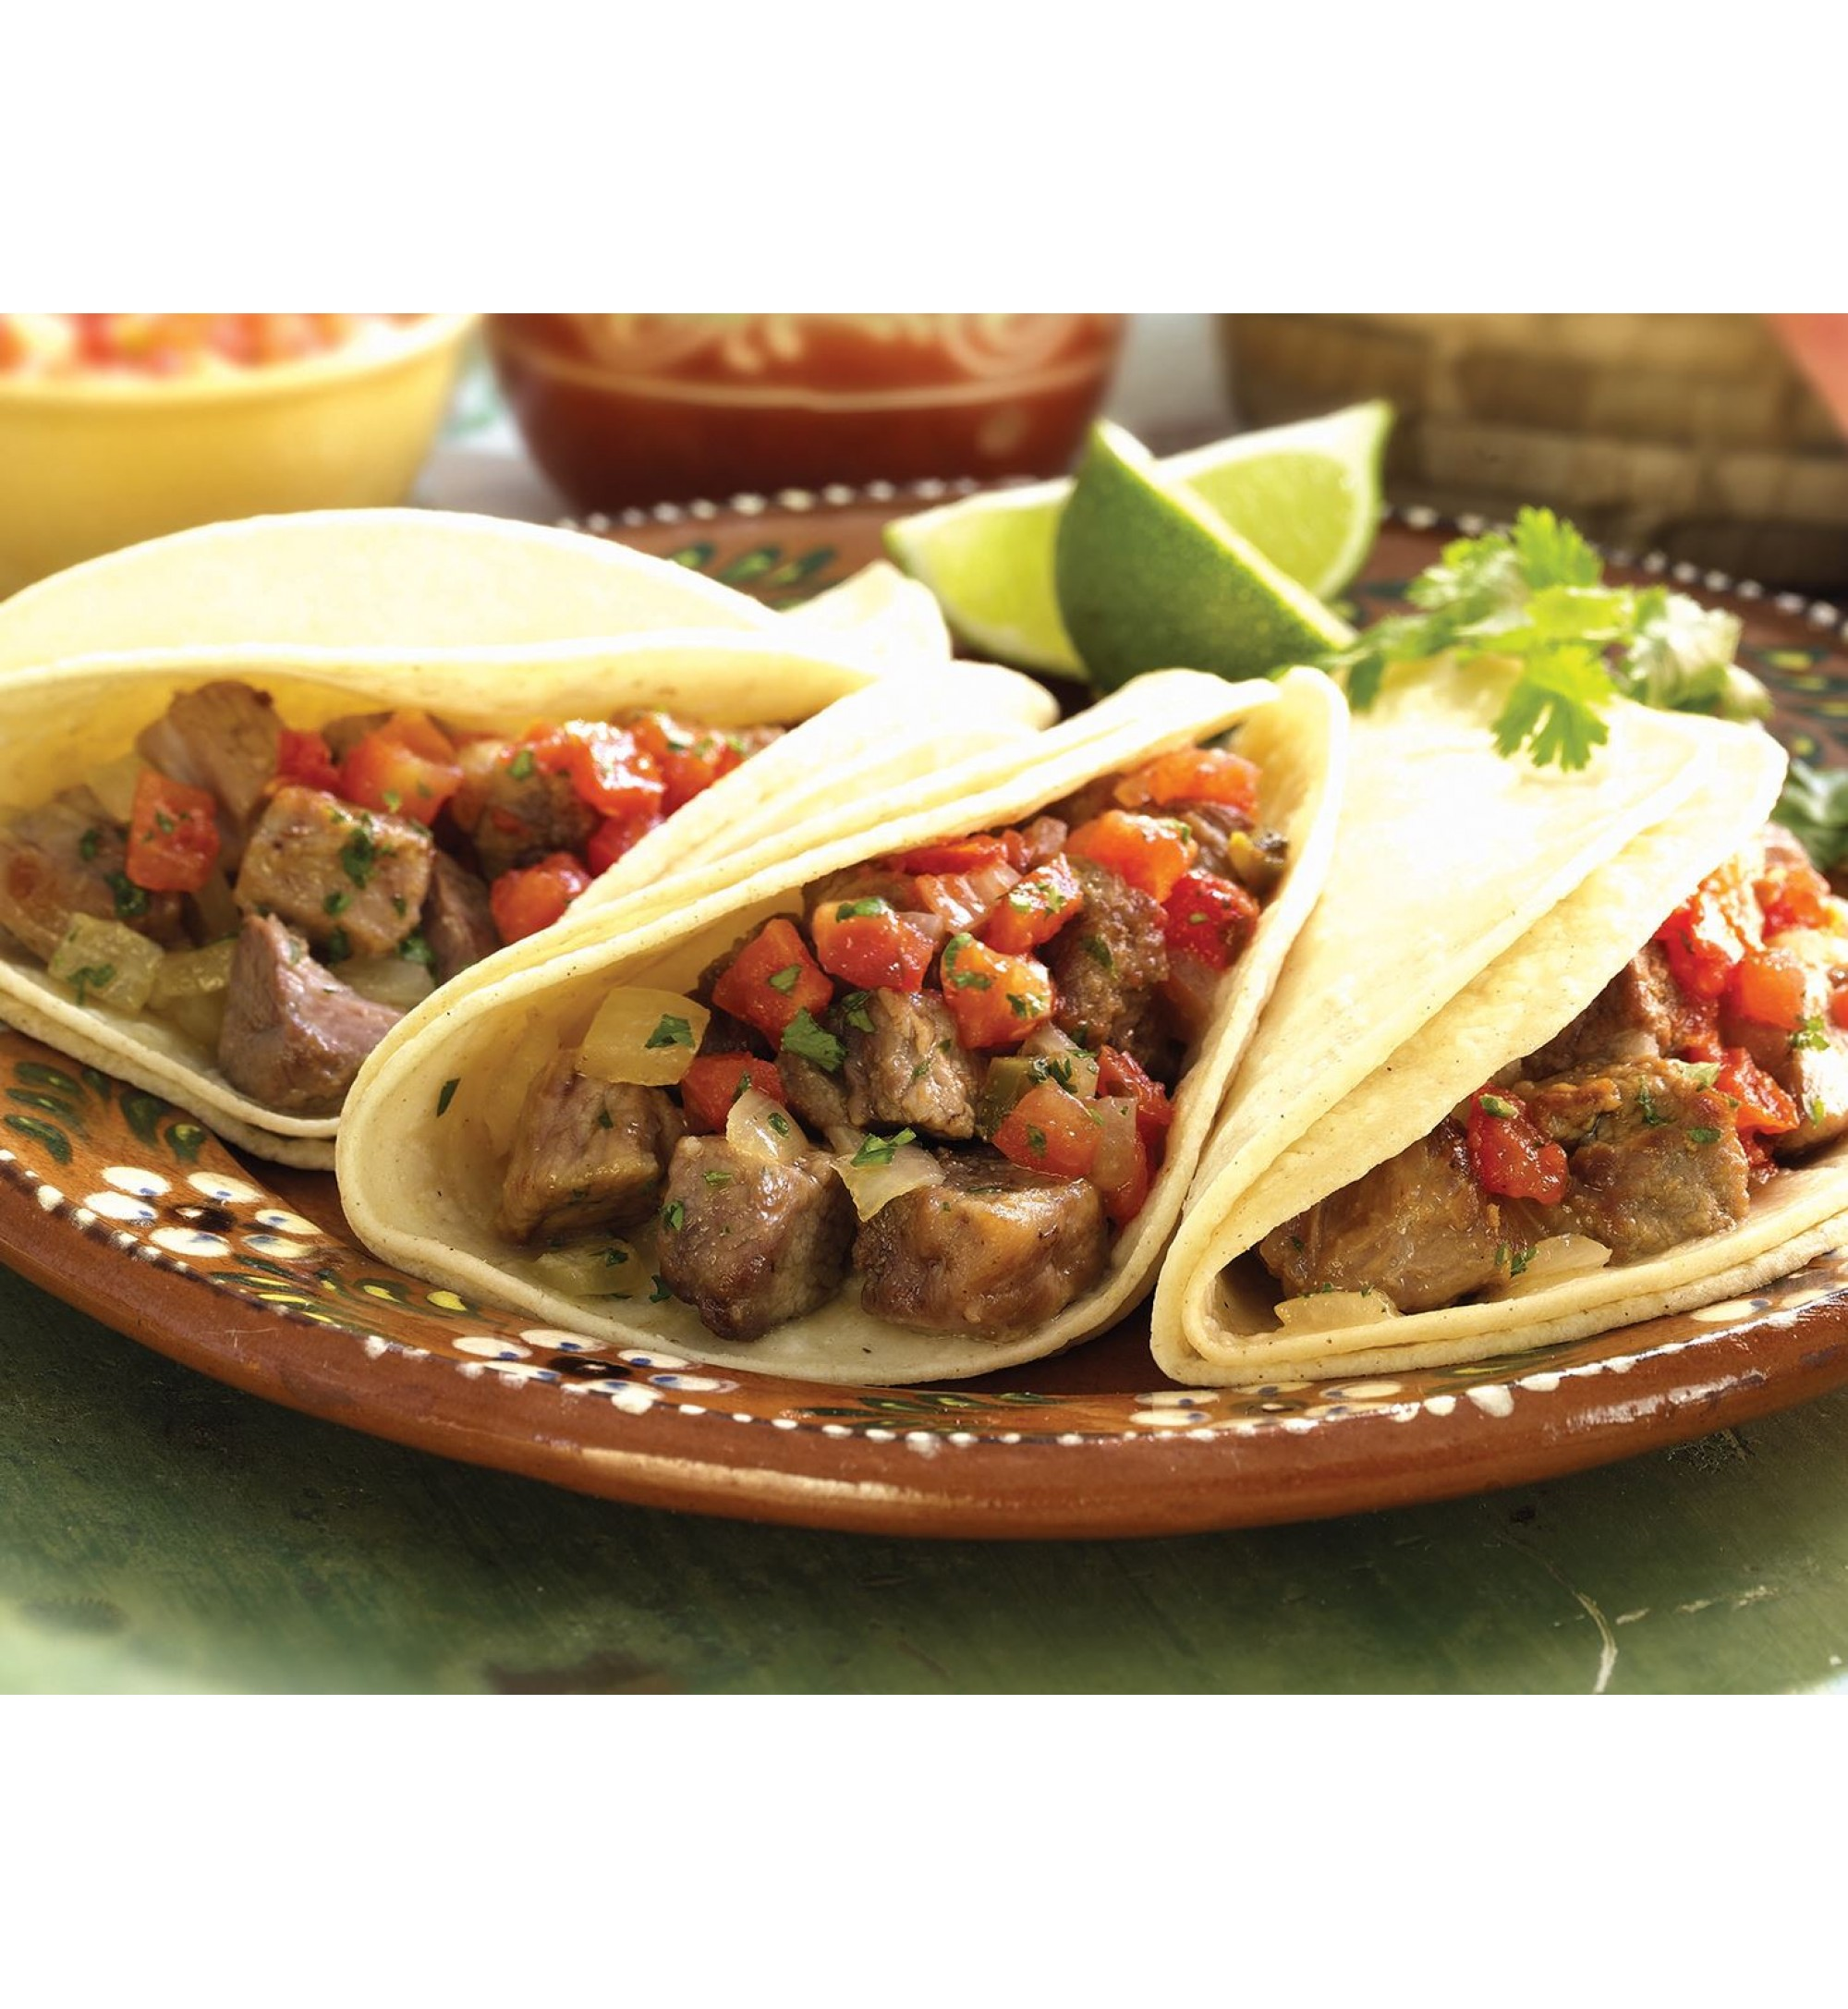 Carnitas – Pork slow cooked over an open fire; flavored with Nonnie's secret blend of spices with cheese & tortillas